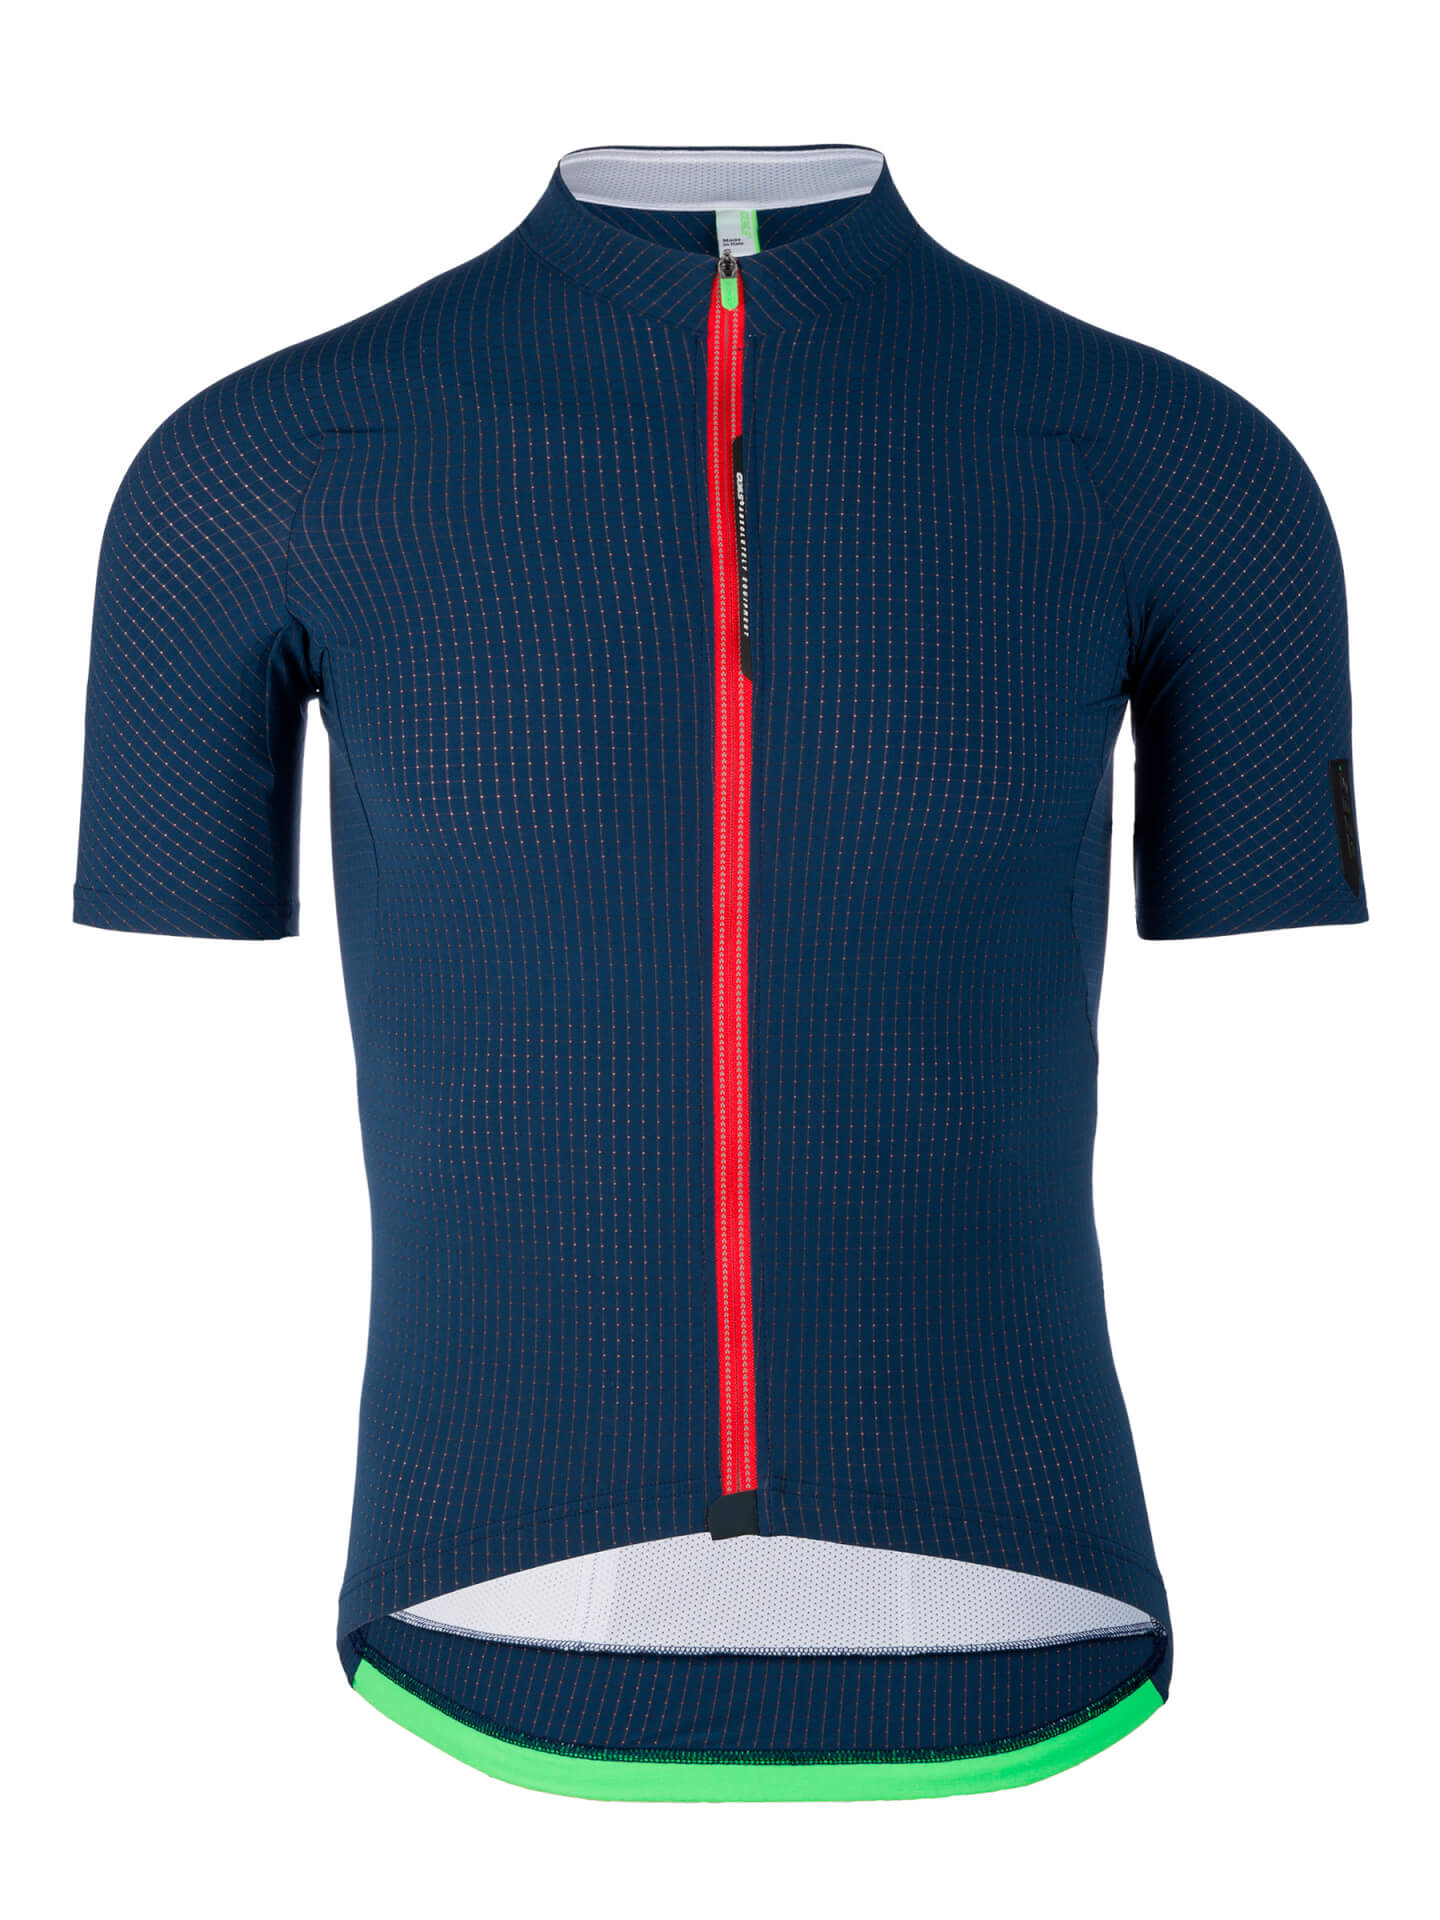 Mens cycling jersey L1 Pinstripe Q36.5 navy blue